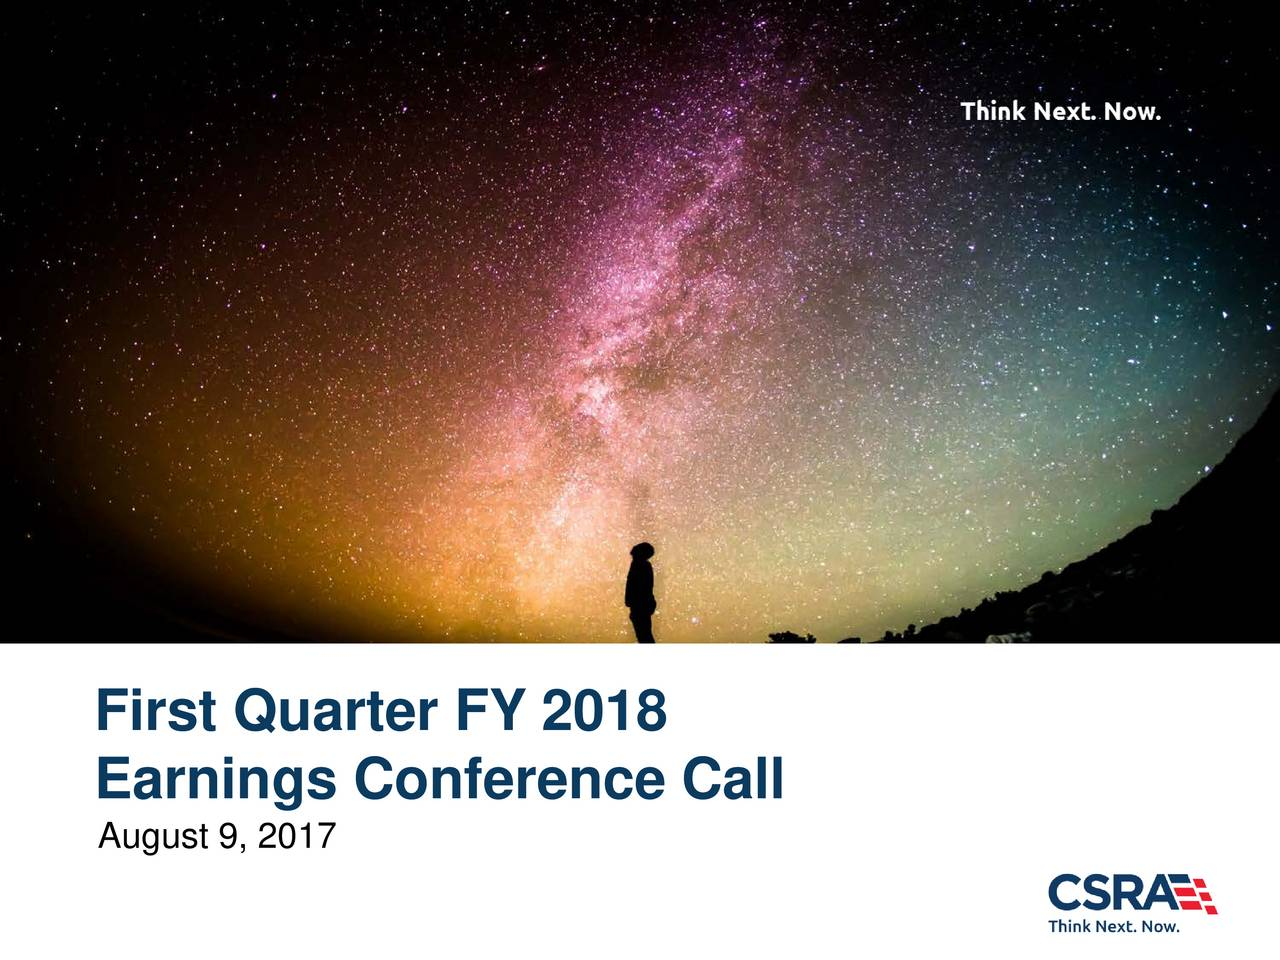 CSRA Inc. 2018 Q1 - Results - Earnings Call Slides - CSRA ...